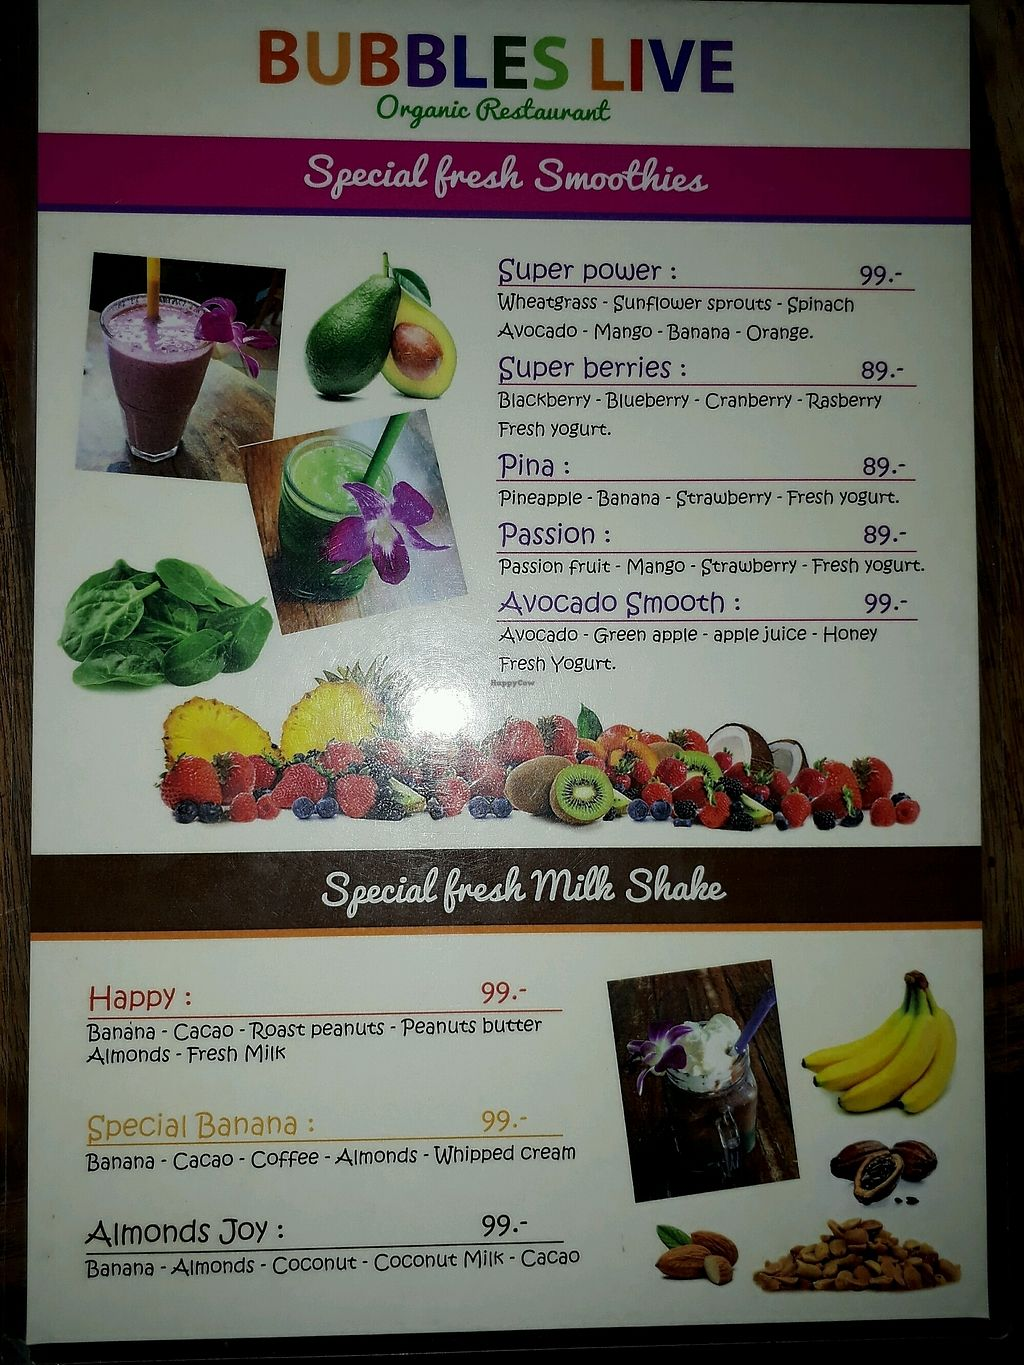 """Photo of Bubbles Live  by <a href=""""/members/profile/LilacHippy"""">LilacHippy</a> <br/>Smoothies Menu <br/> February 2, 2018  - <a href='/contact/abuse/image/53652/353844'>Report</a>"""